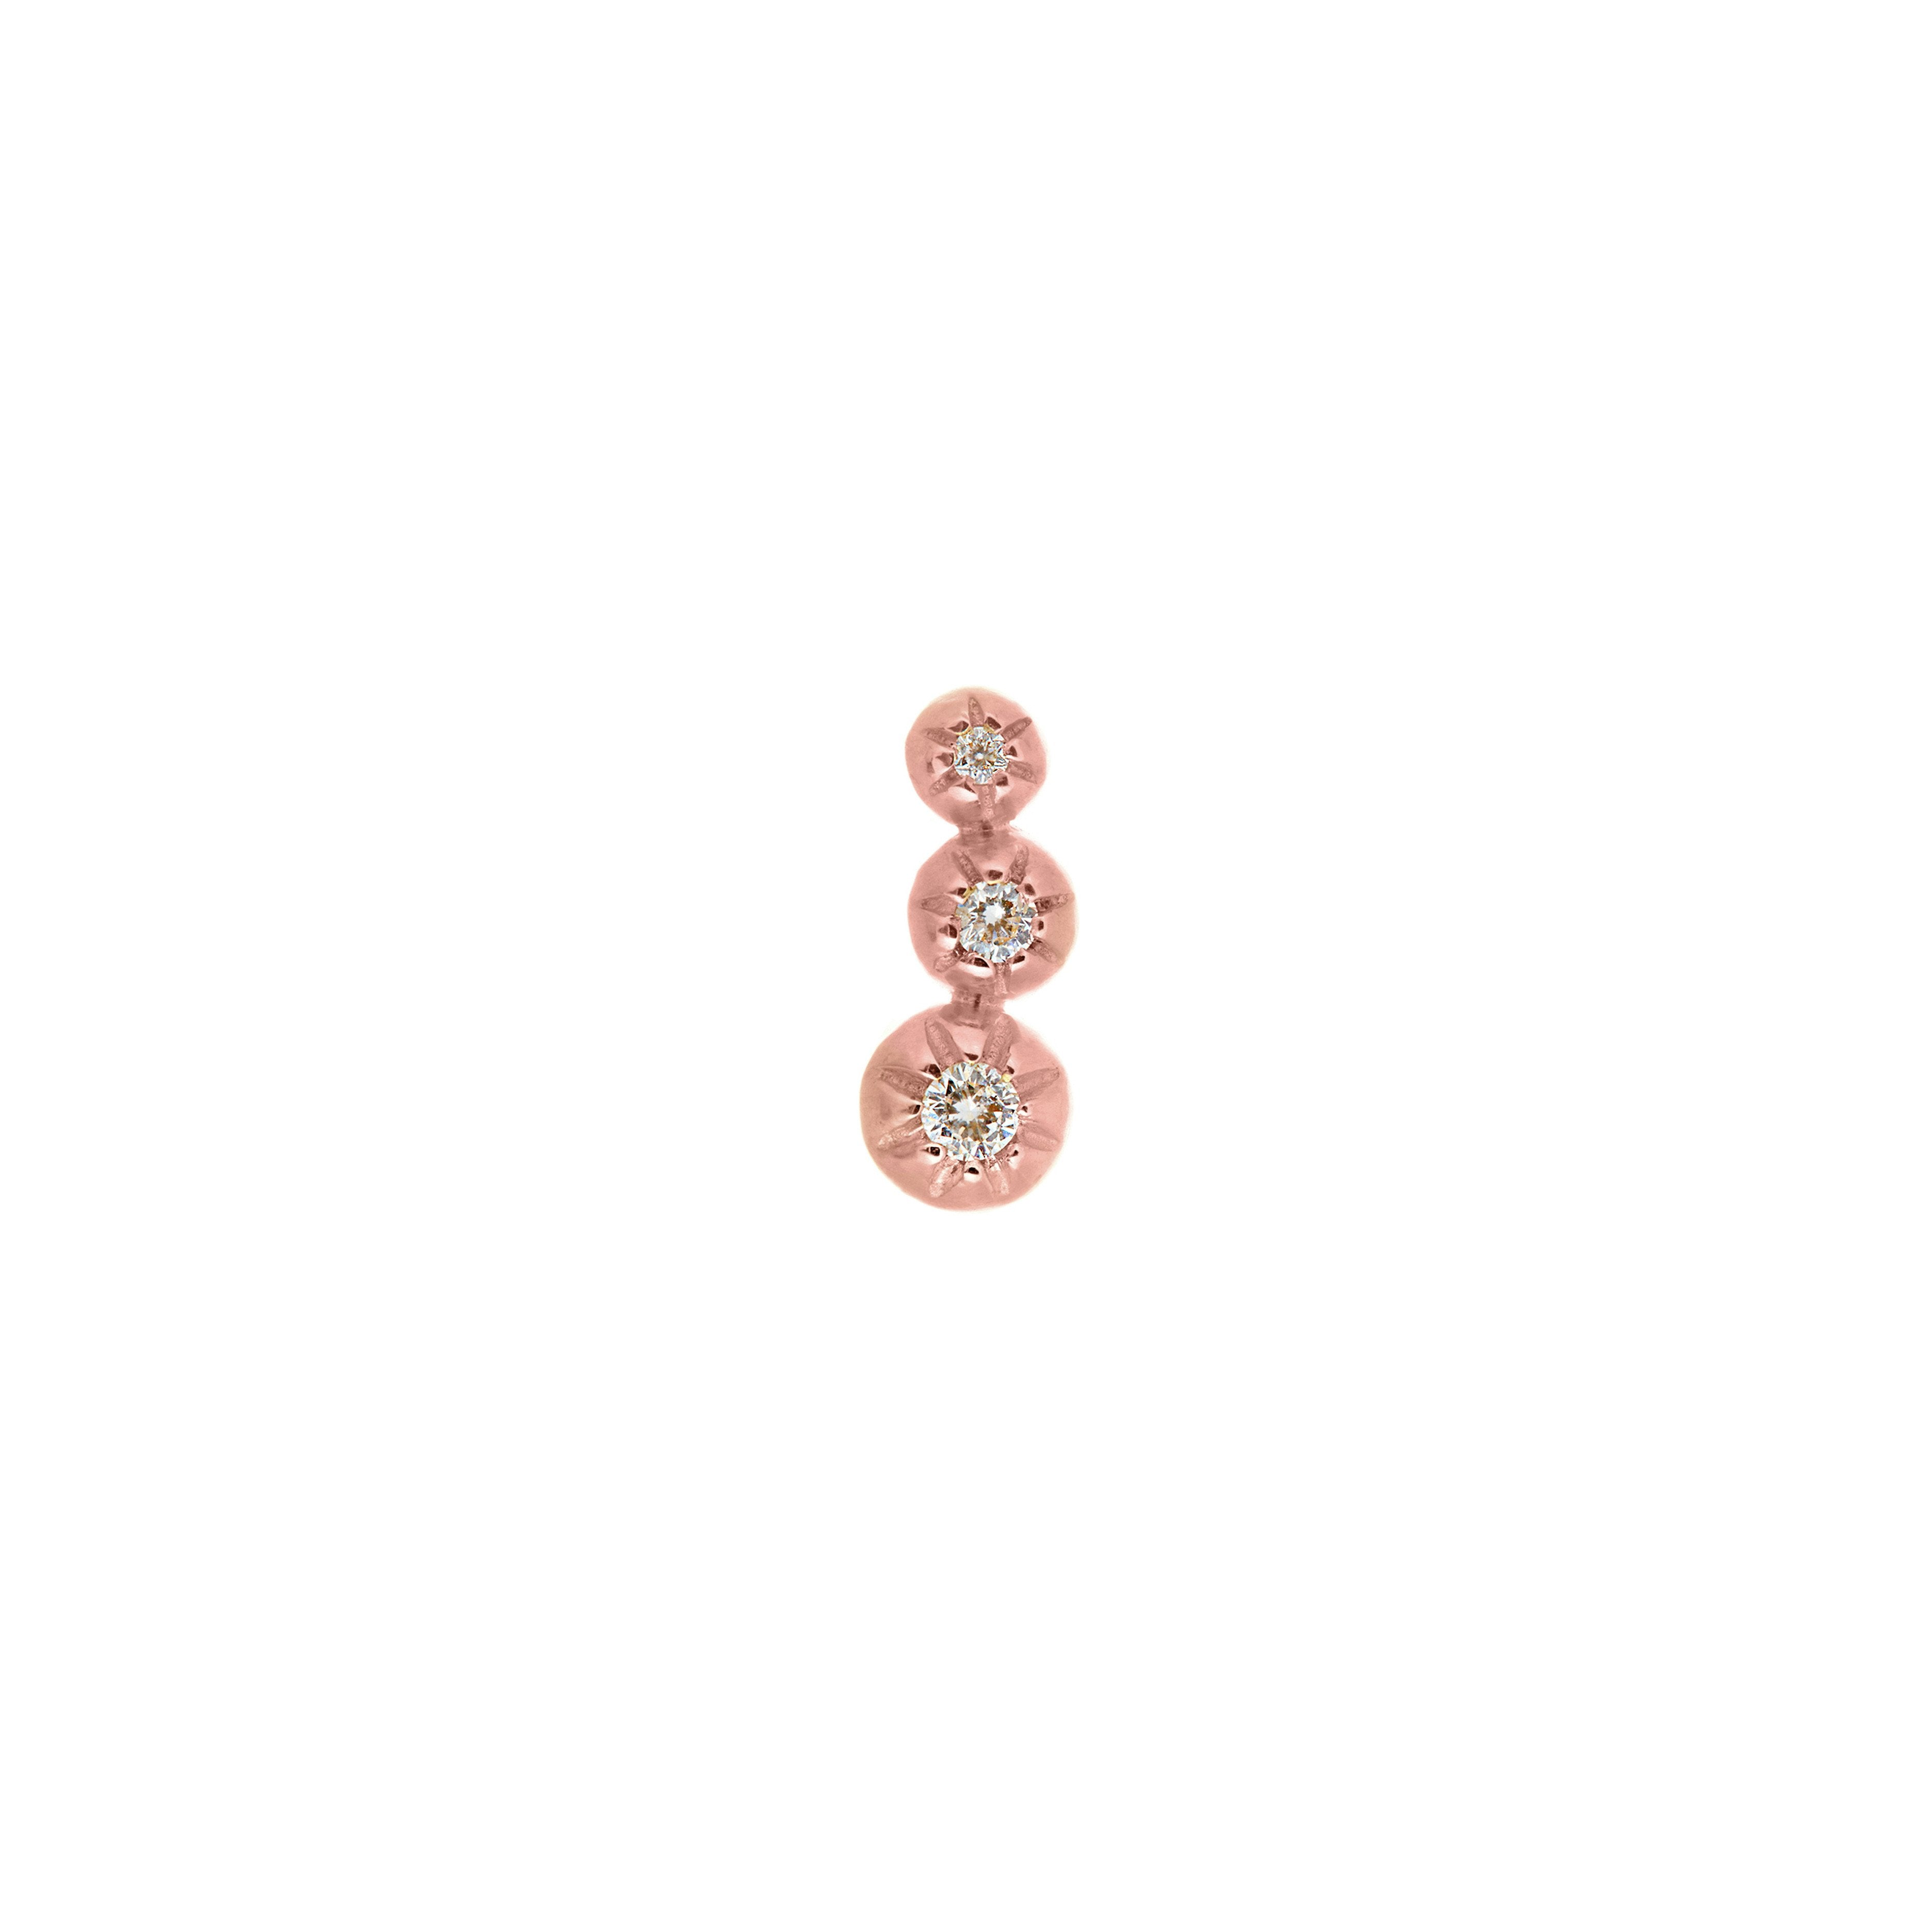 Tri Star Set Diamond Earring Studs